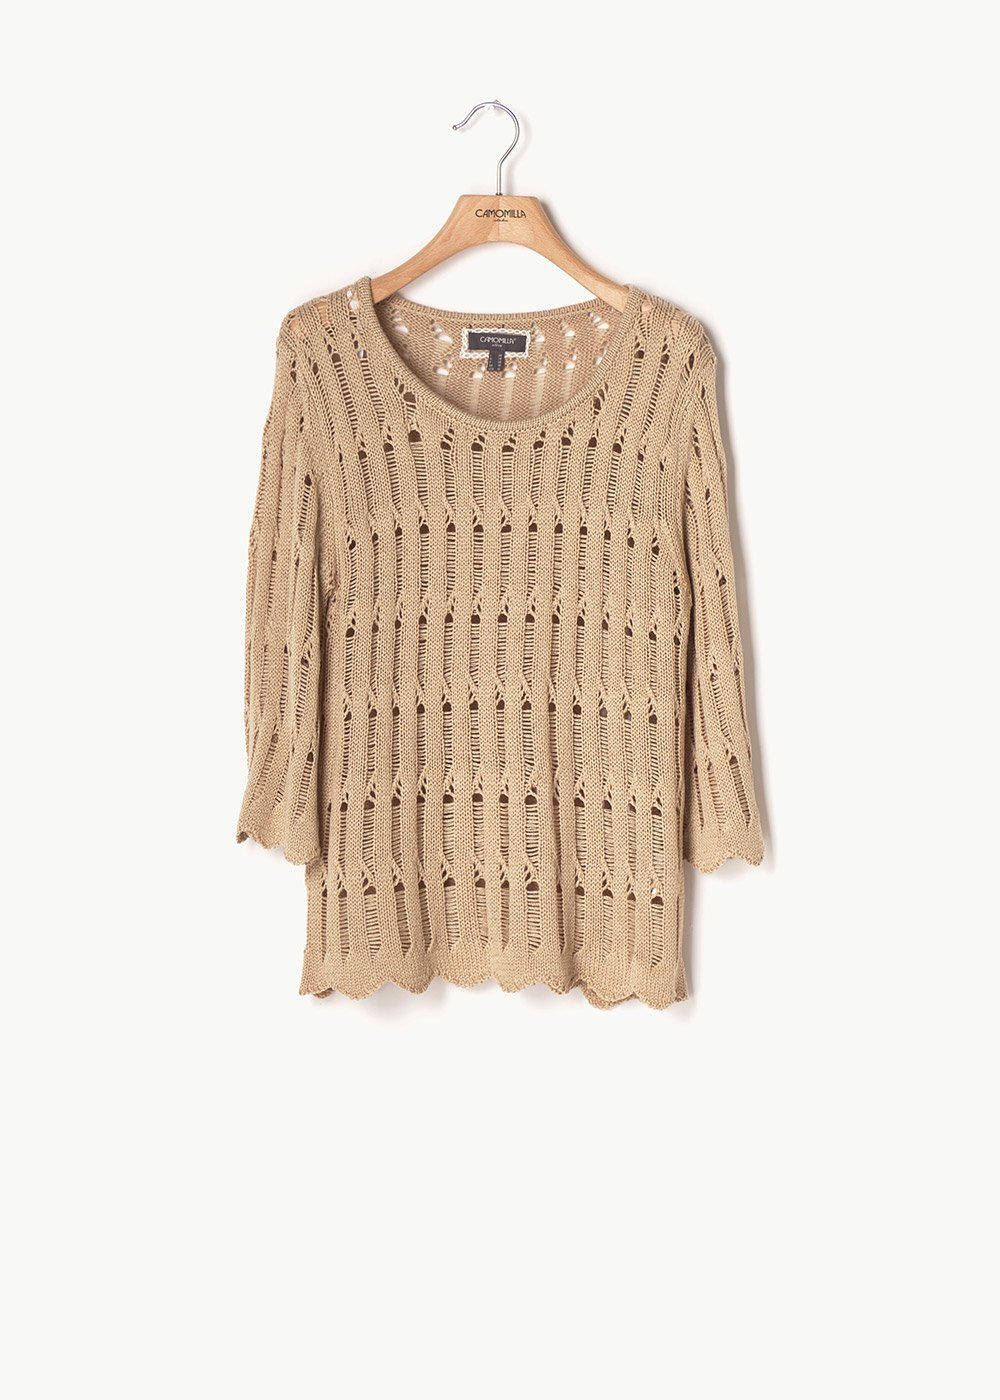 Doek openwork sweater - Doeskin - Woman